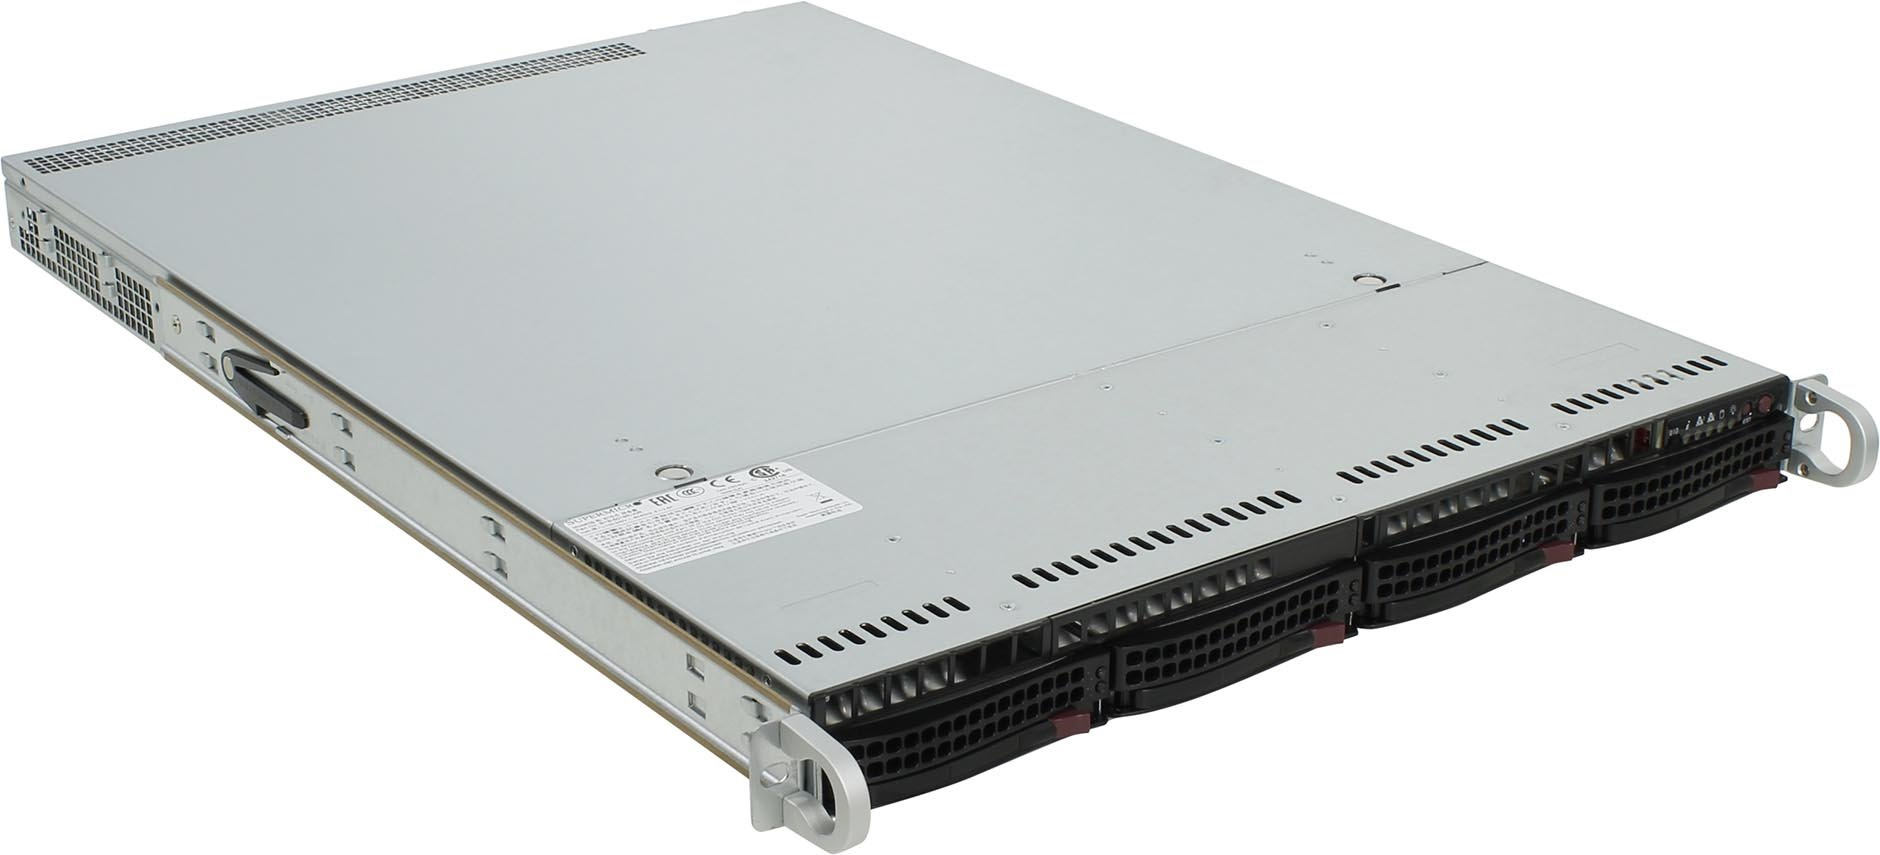 SERVER Rack 1120 0671480 1xE5-2603V4/1x8gb/2x1tb/2x500w/Windows Server 2019 Standard